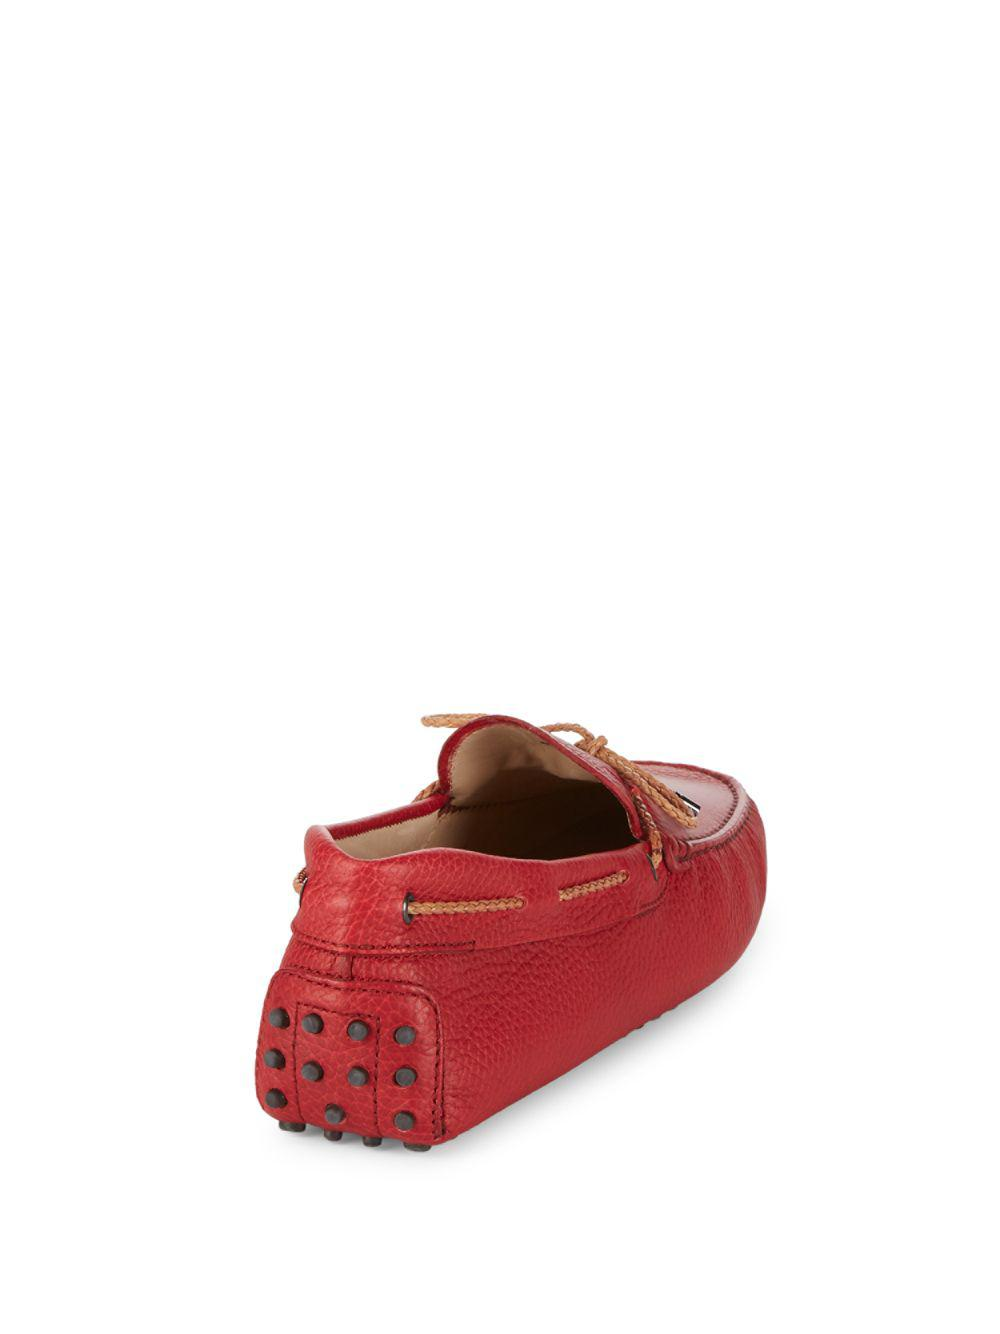 Tod's Slip-on Leather Drivers in Red for Men